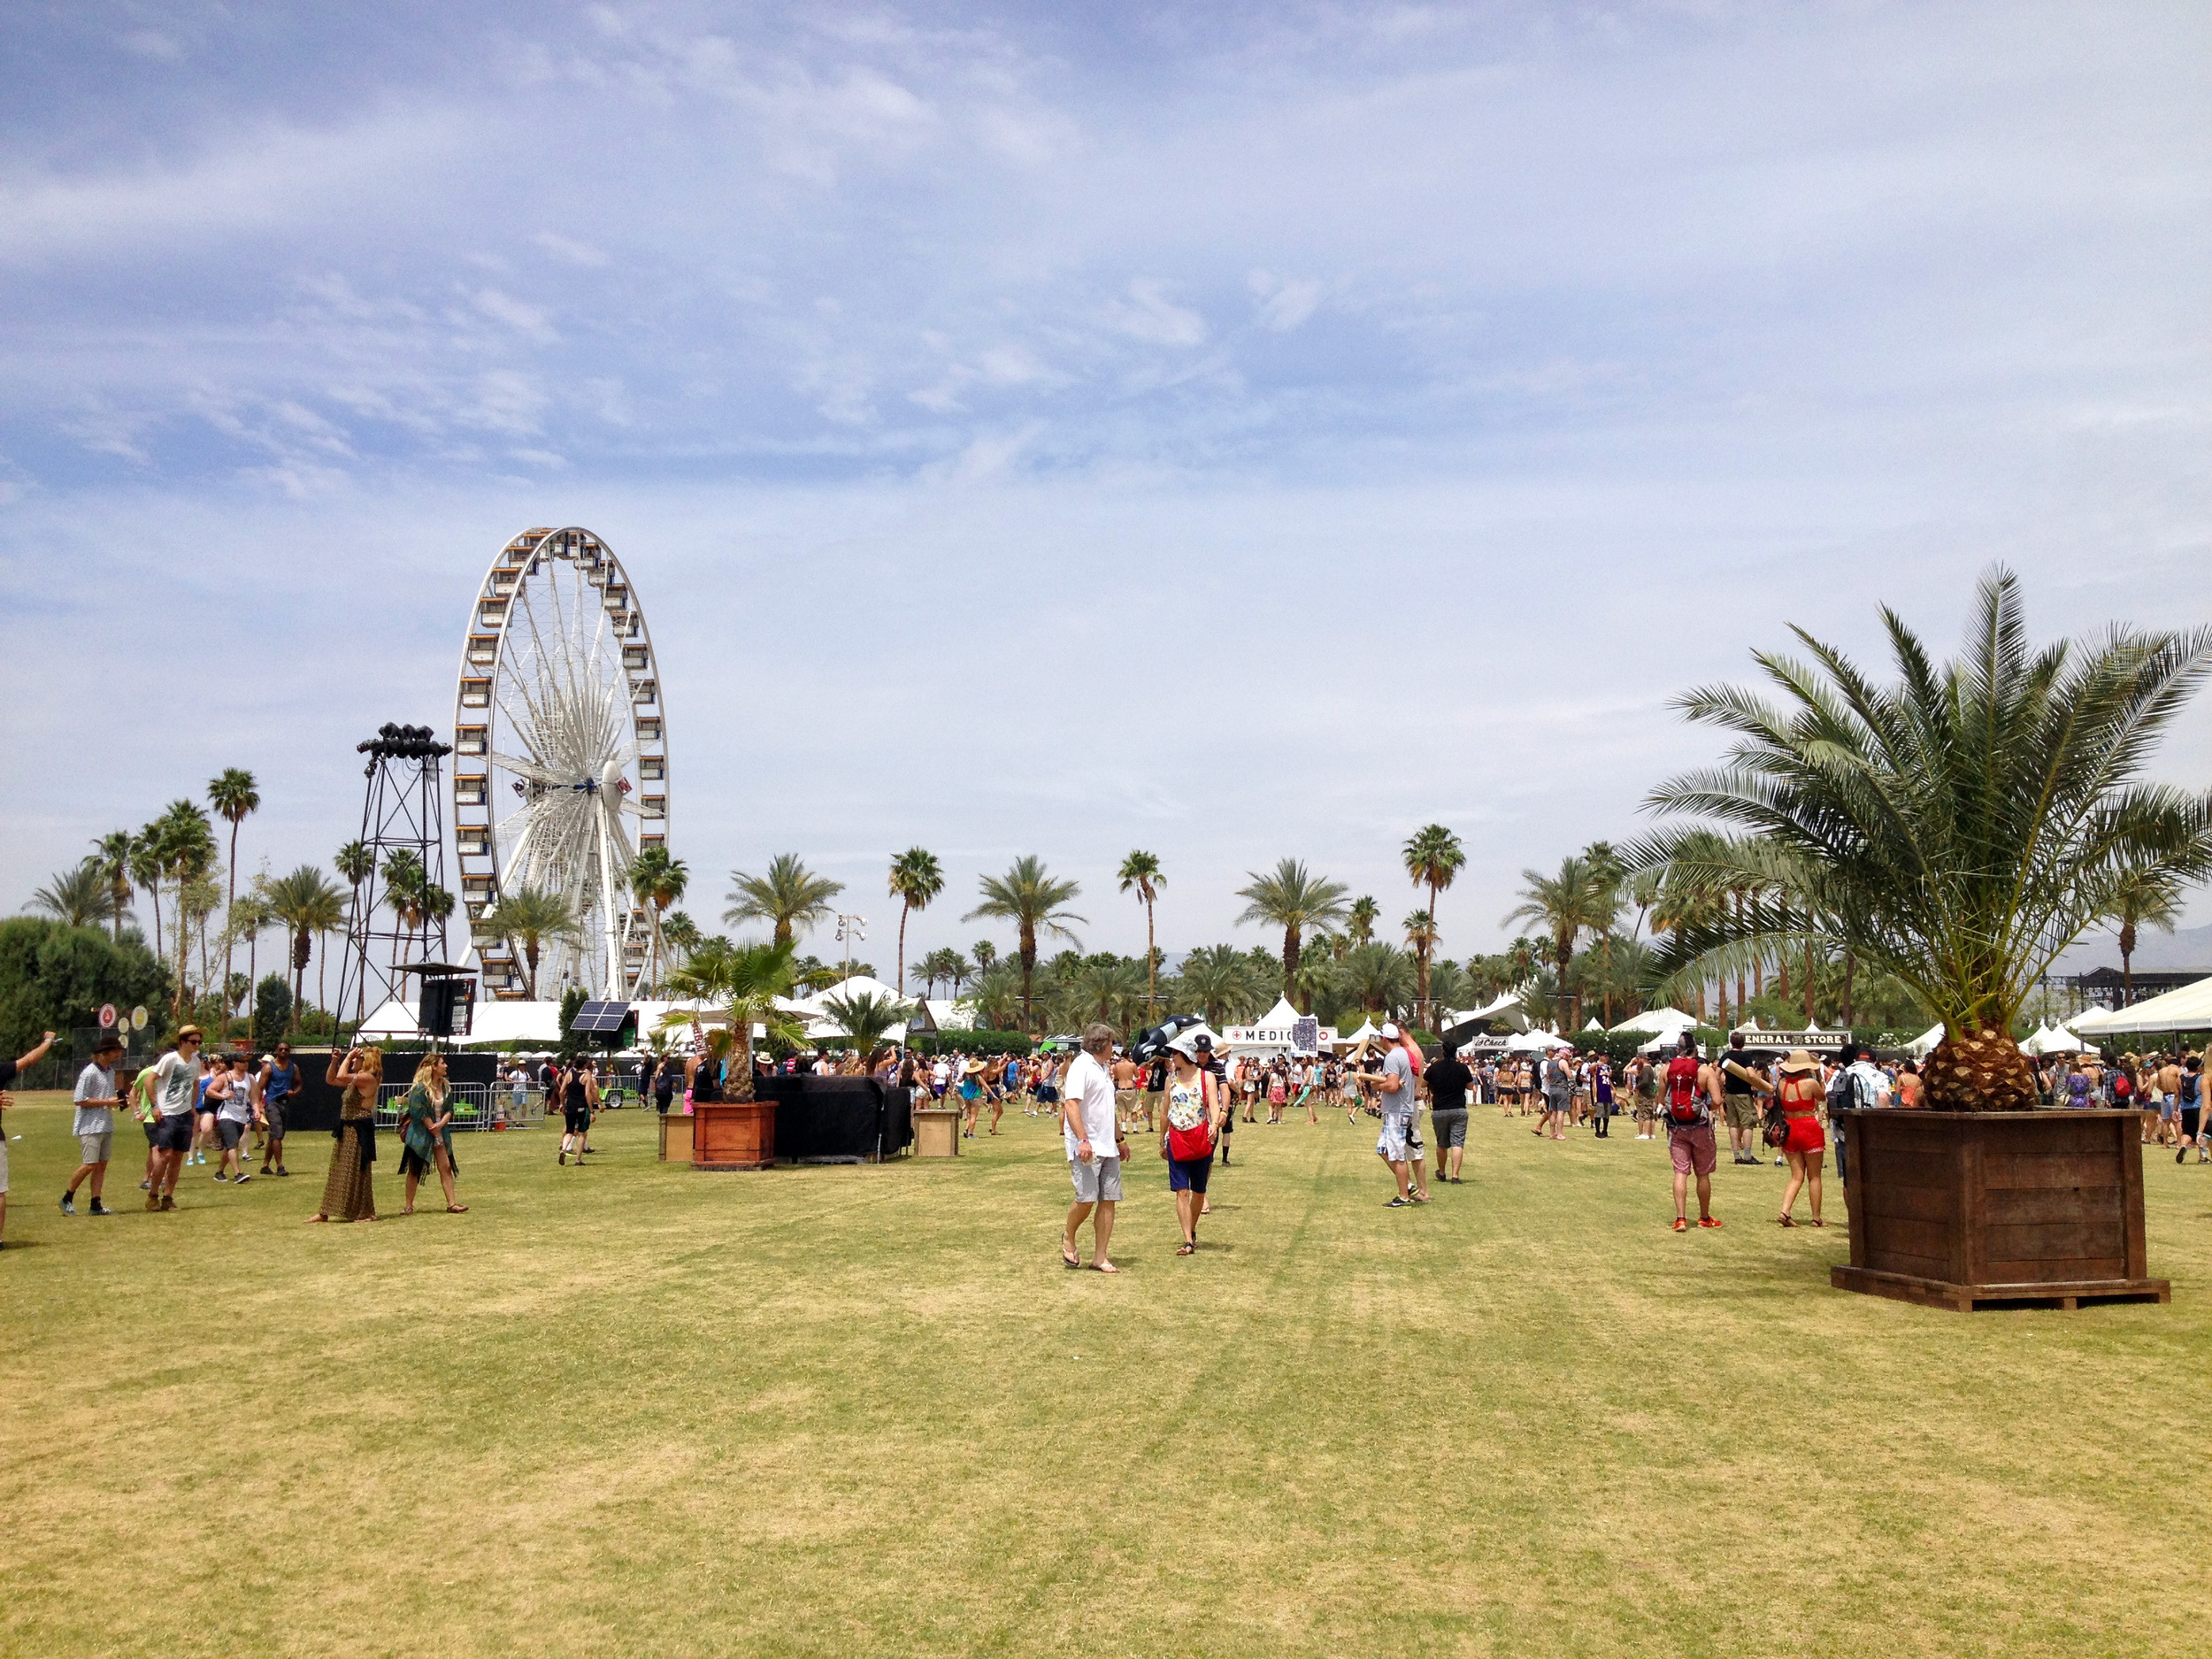 Coachella Valley Music Festival, 2014, Weekend 2